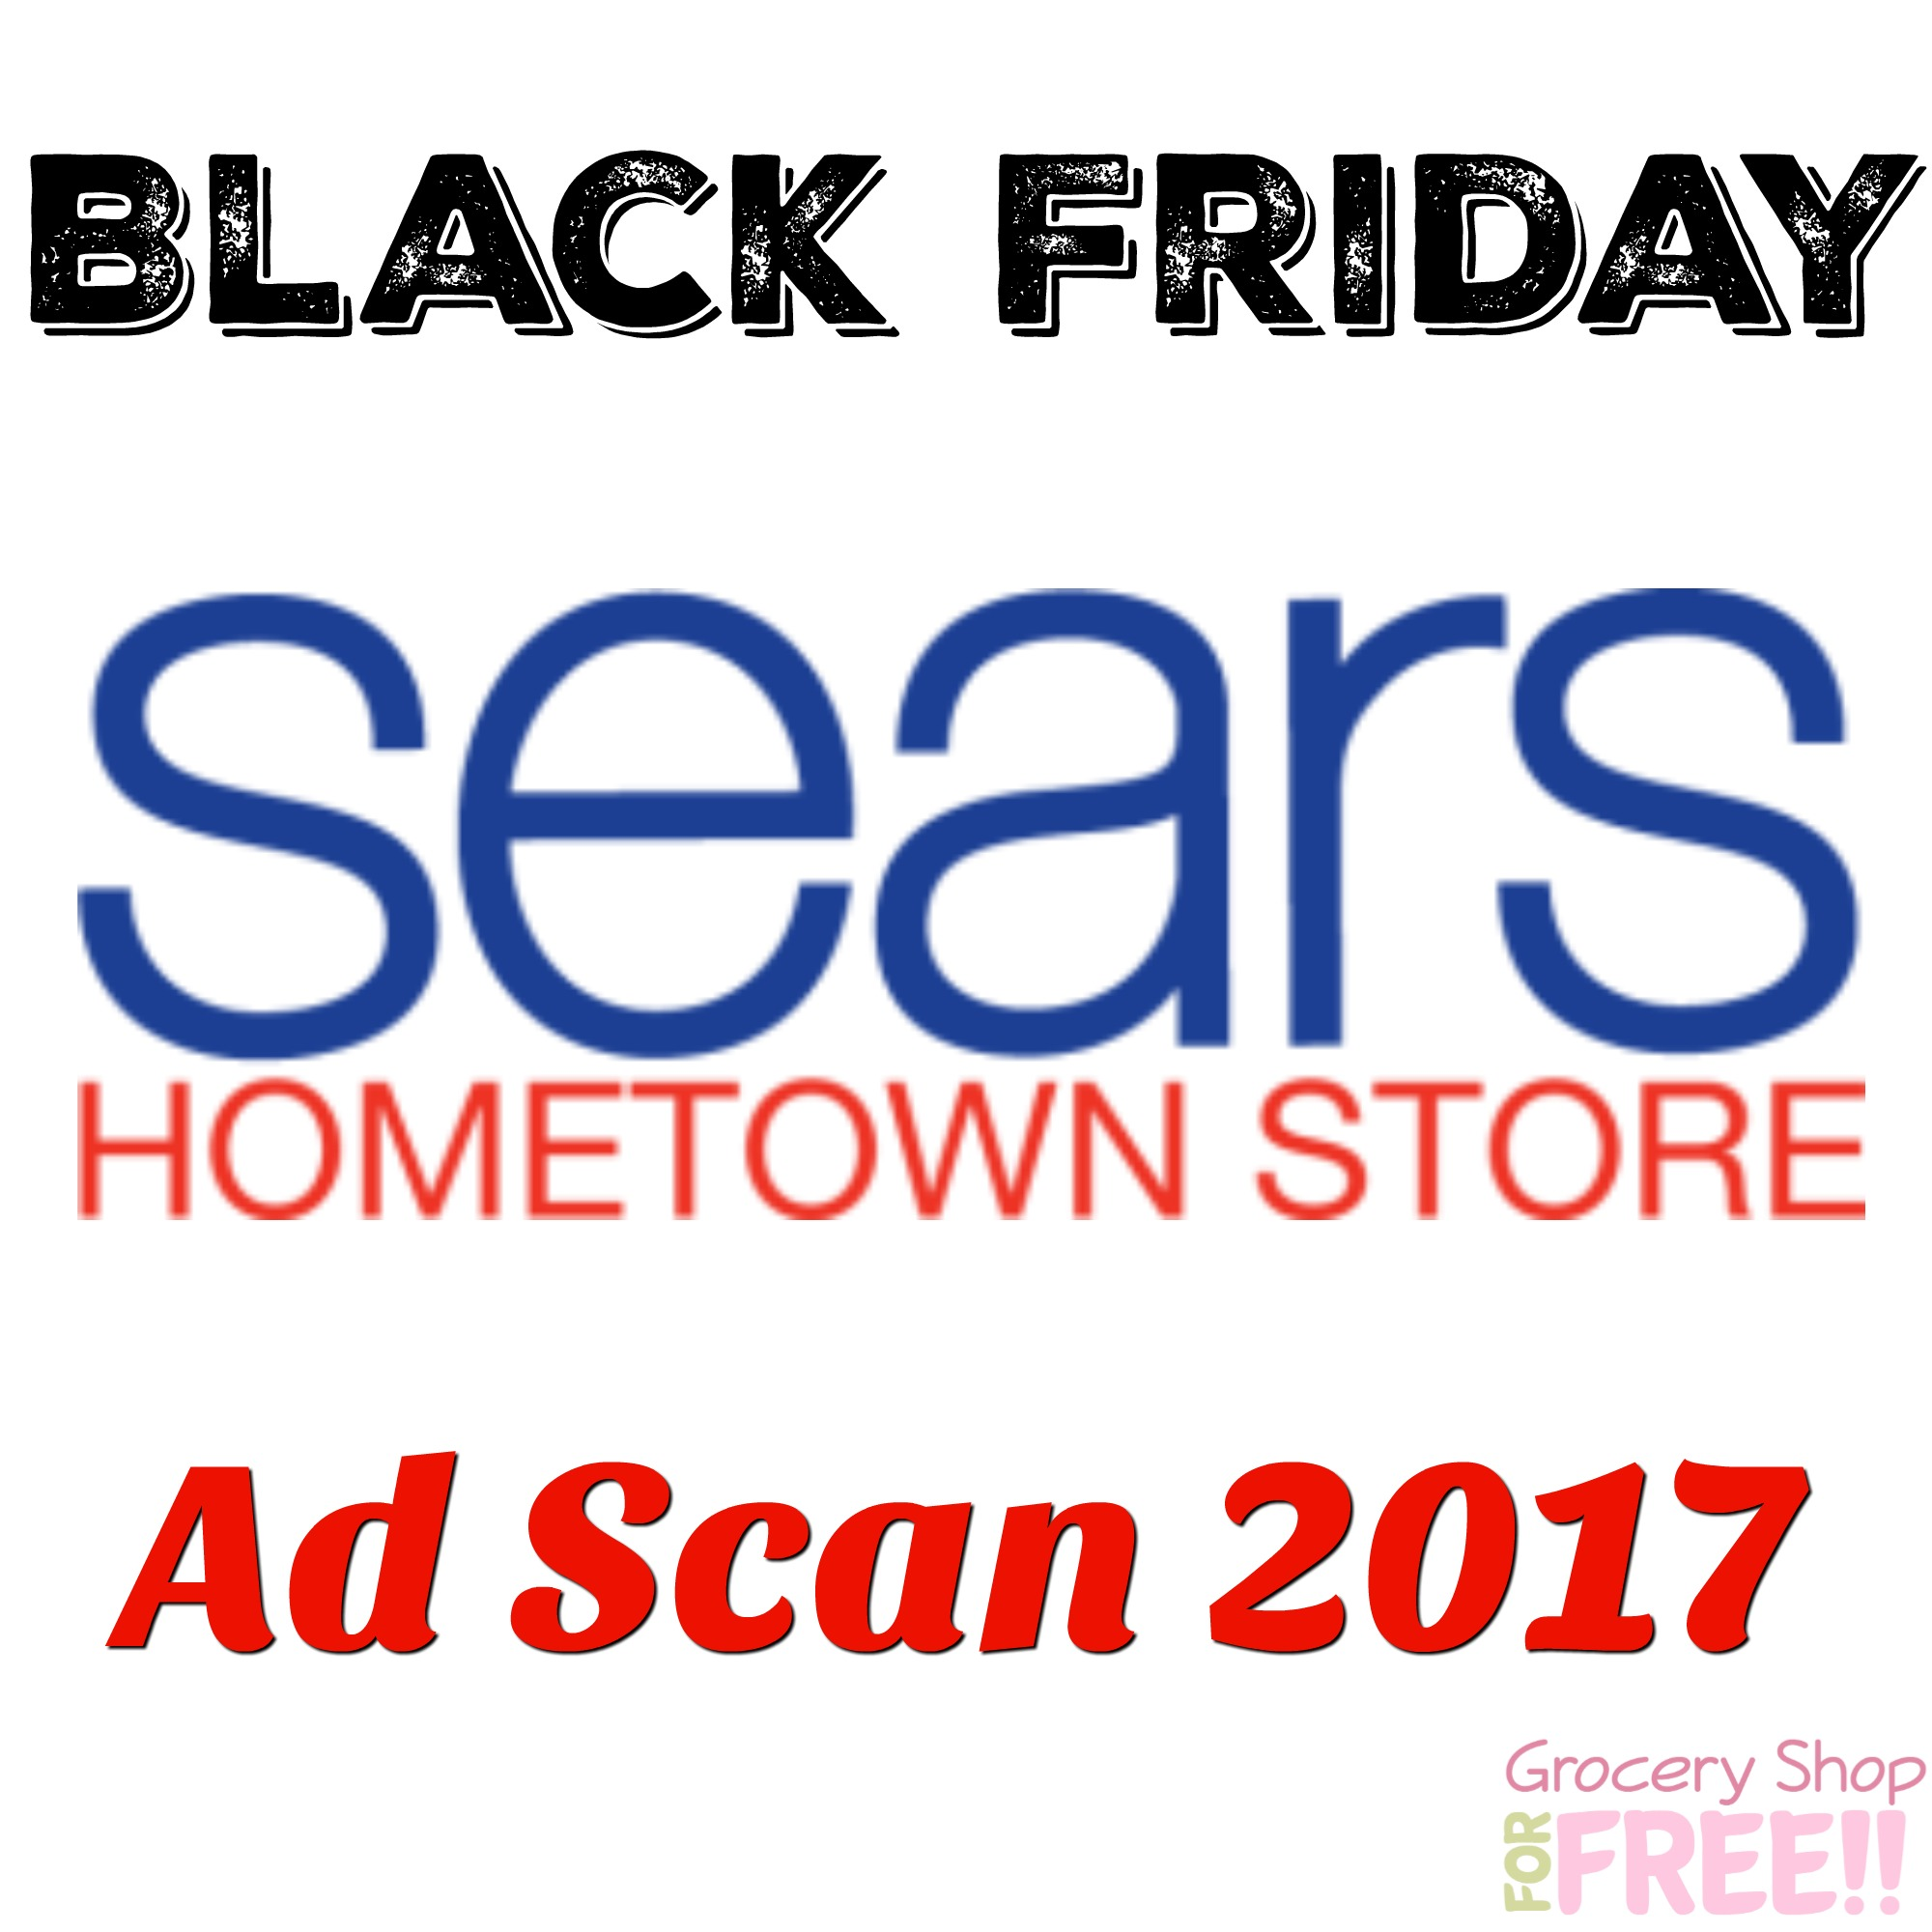 Sears Hometown Store Black Friday Ad 2017 Scan!